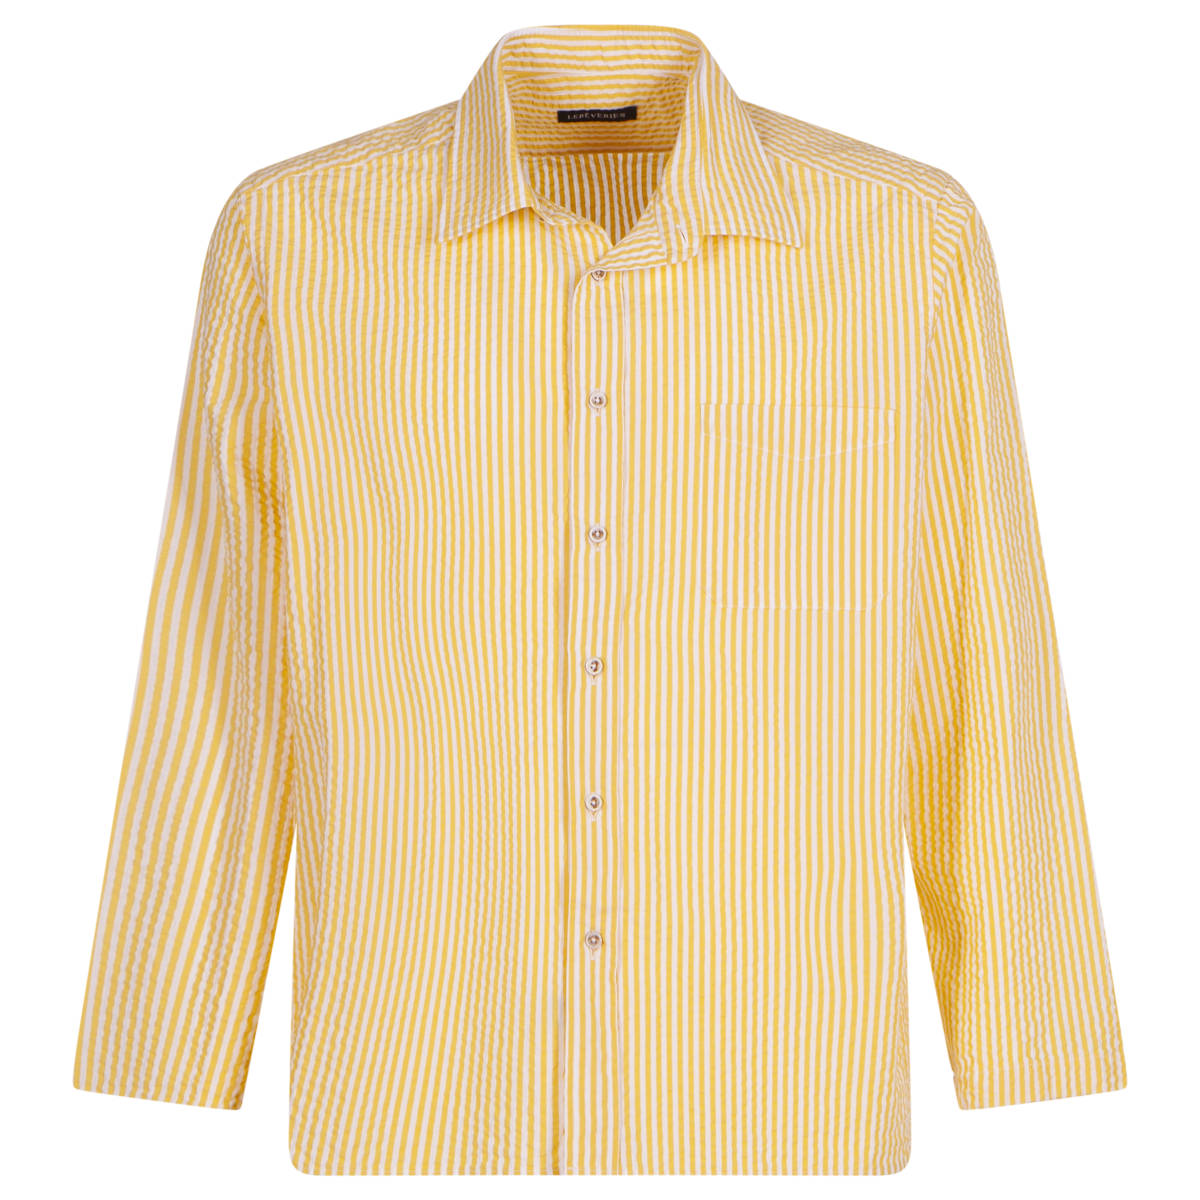 WILFRED Camicia a righe gialla goffrata Lereveries - front